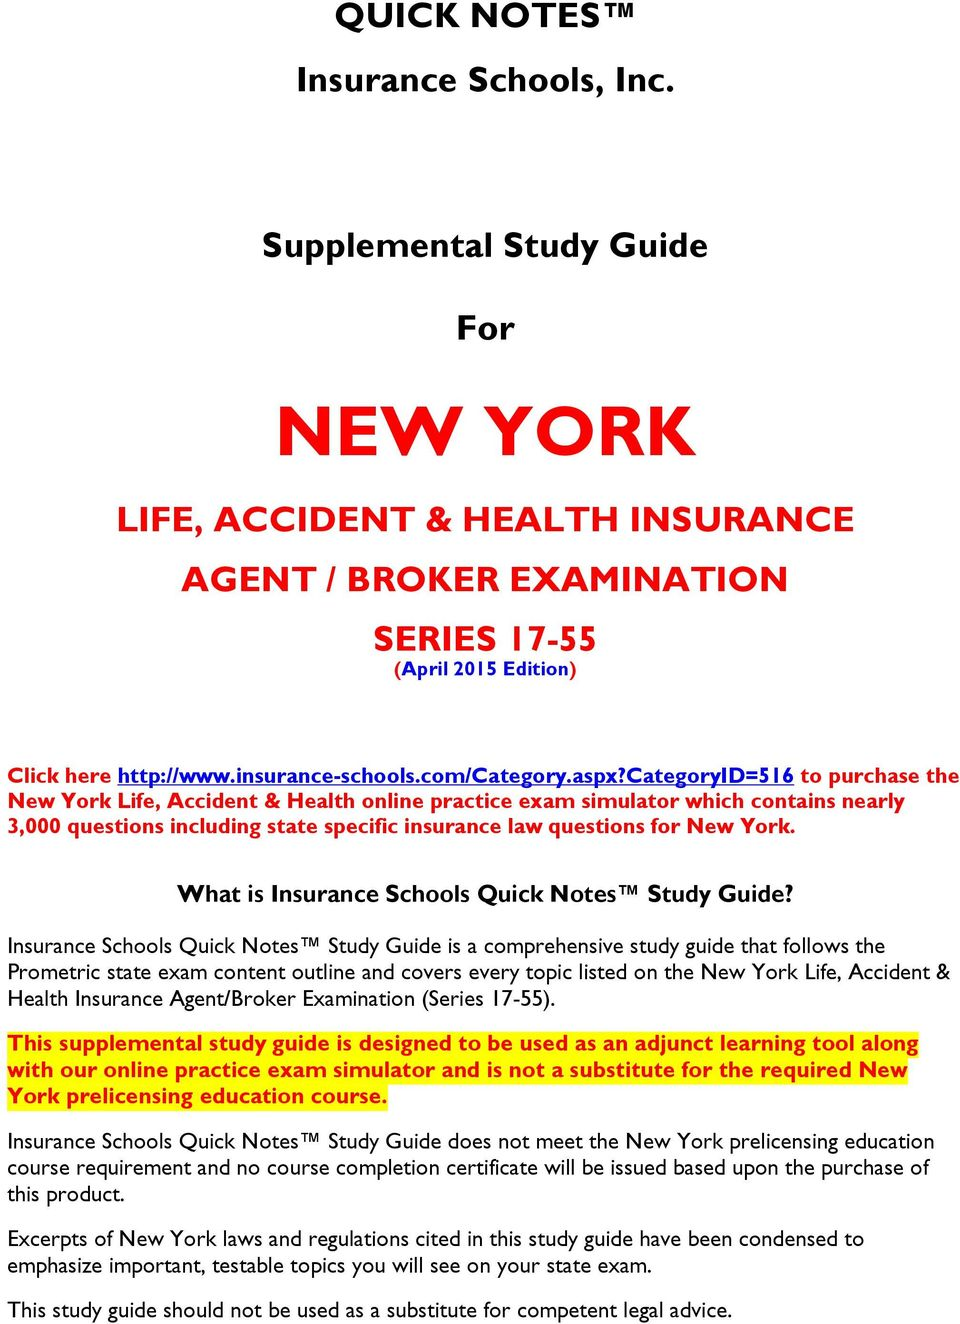 categoryid=516 to purchase the New York Life, Accident & Health online  practice exam